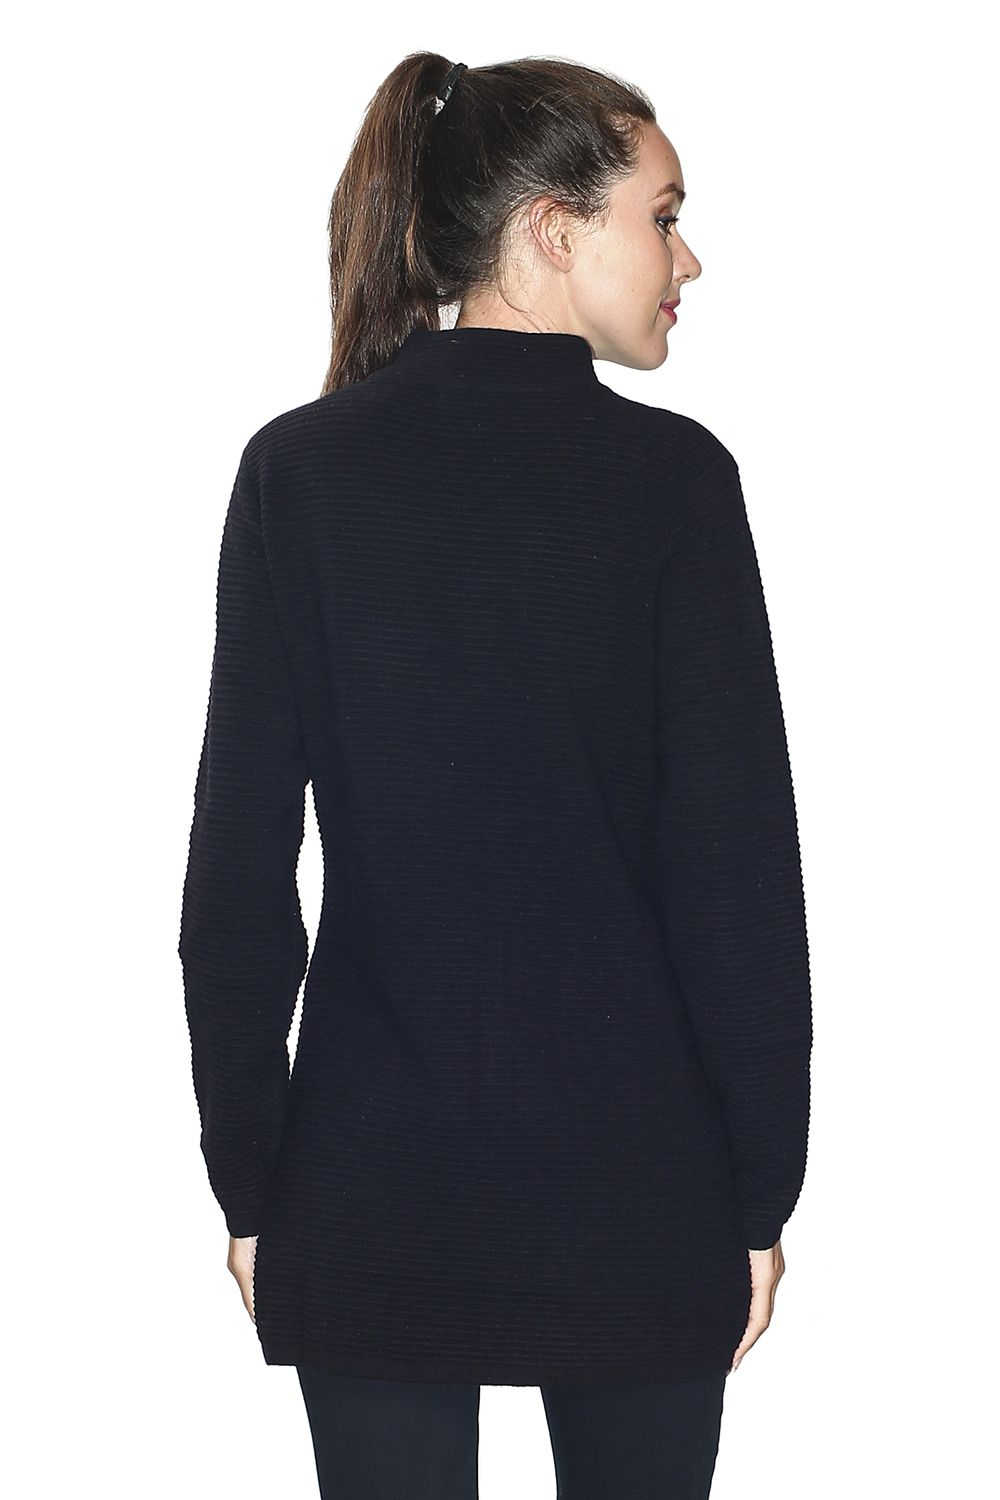 Assuili Long Sleeve Tunic with Pockets and Buttoned Shoulders in Black